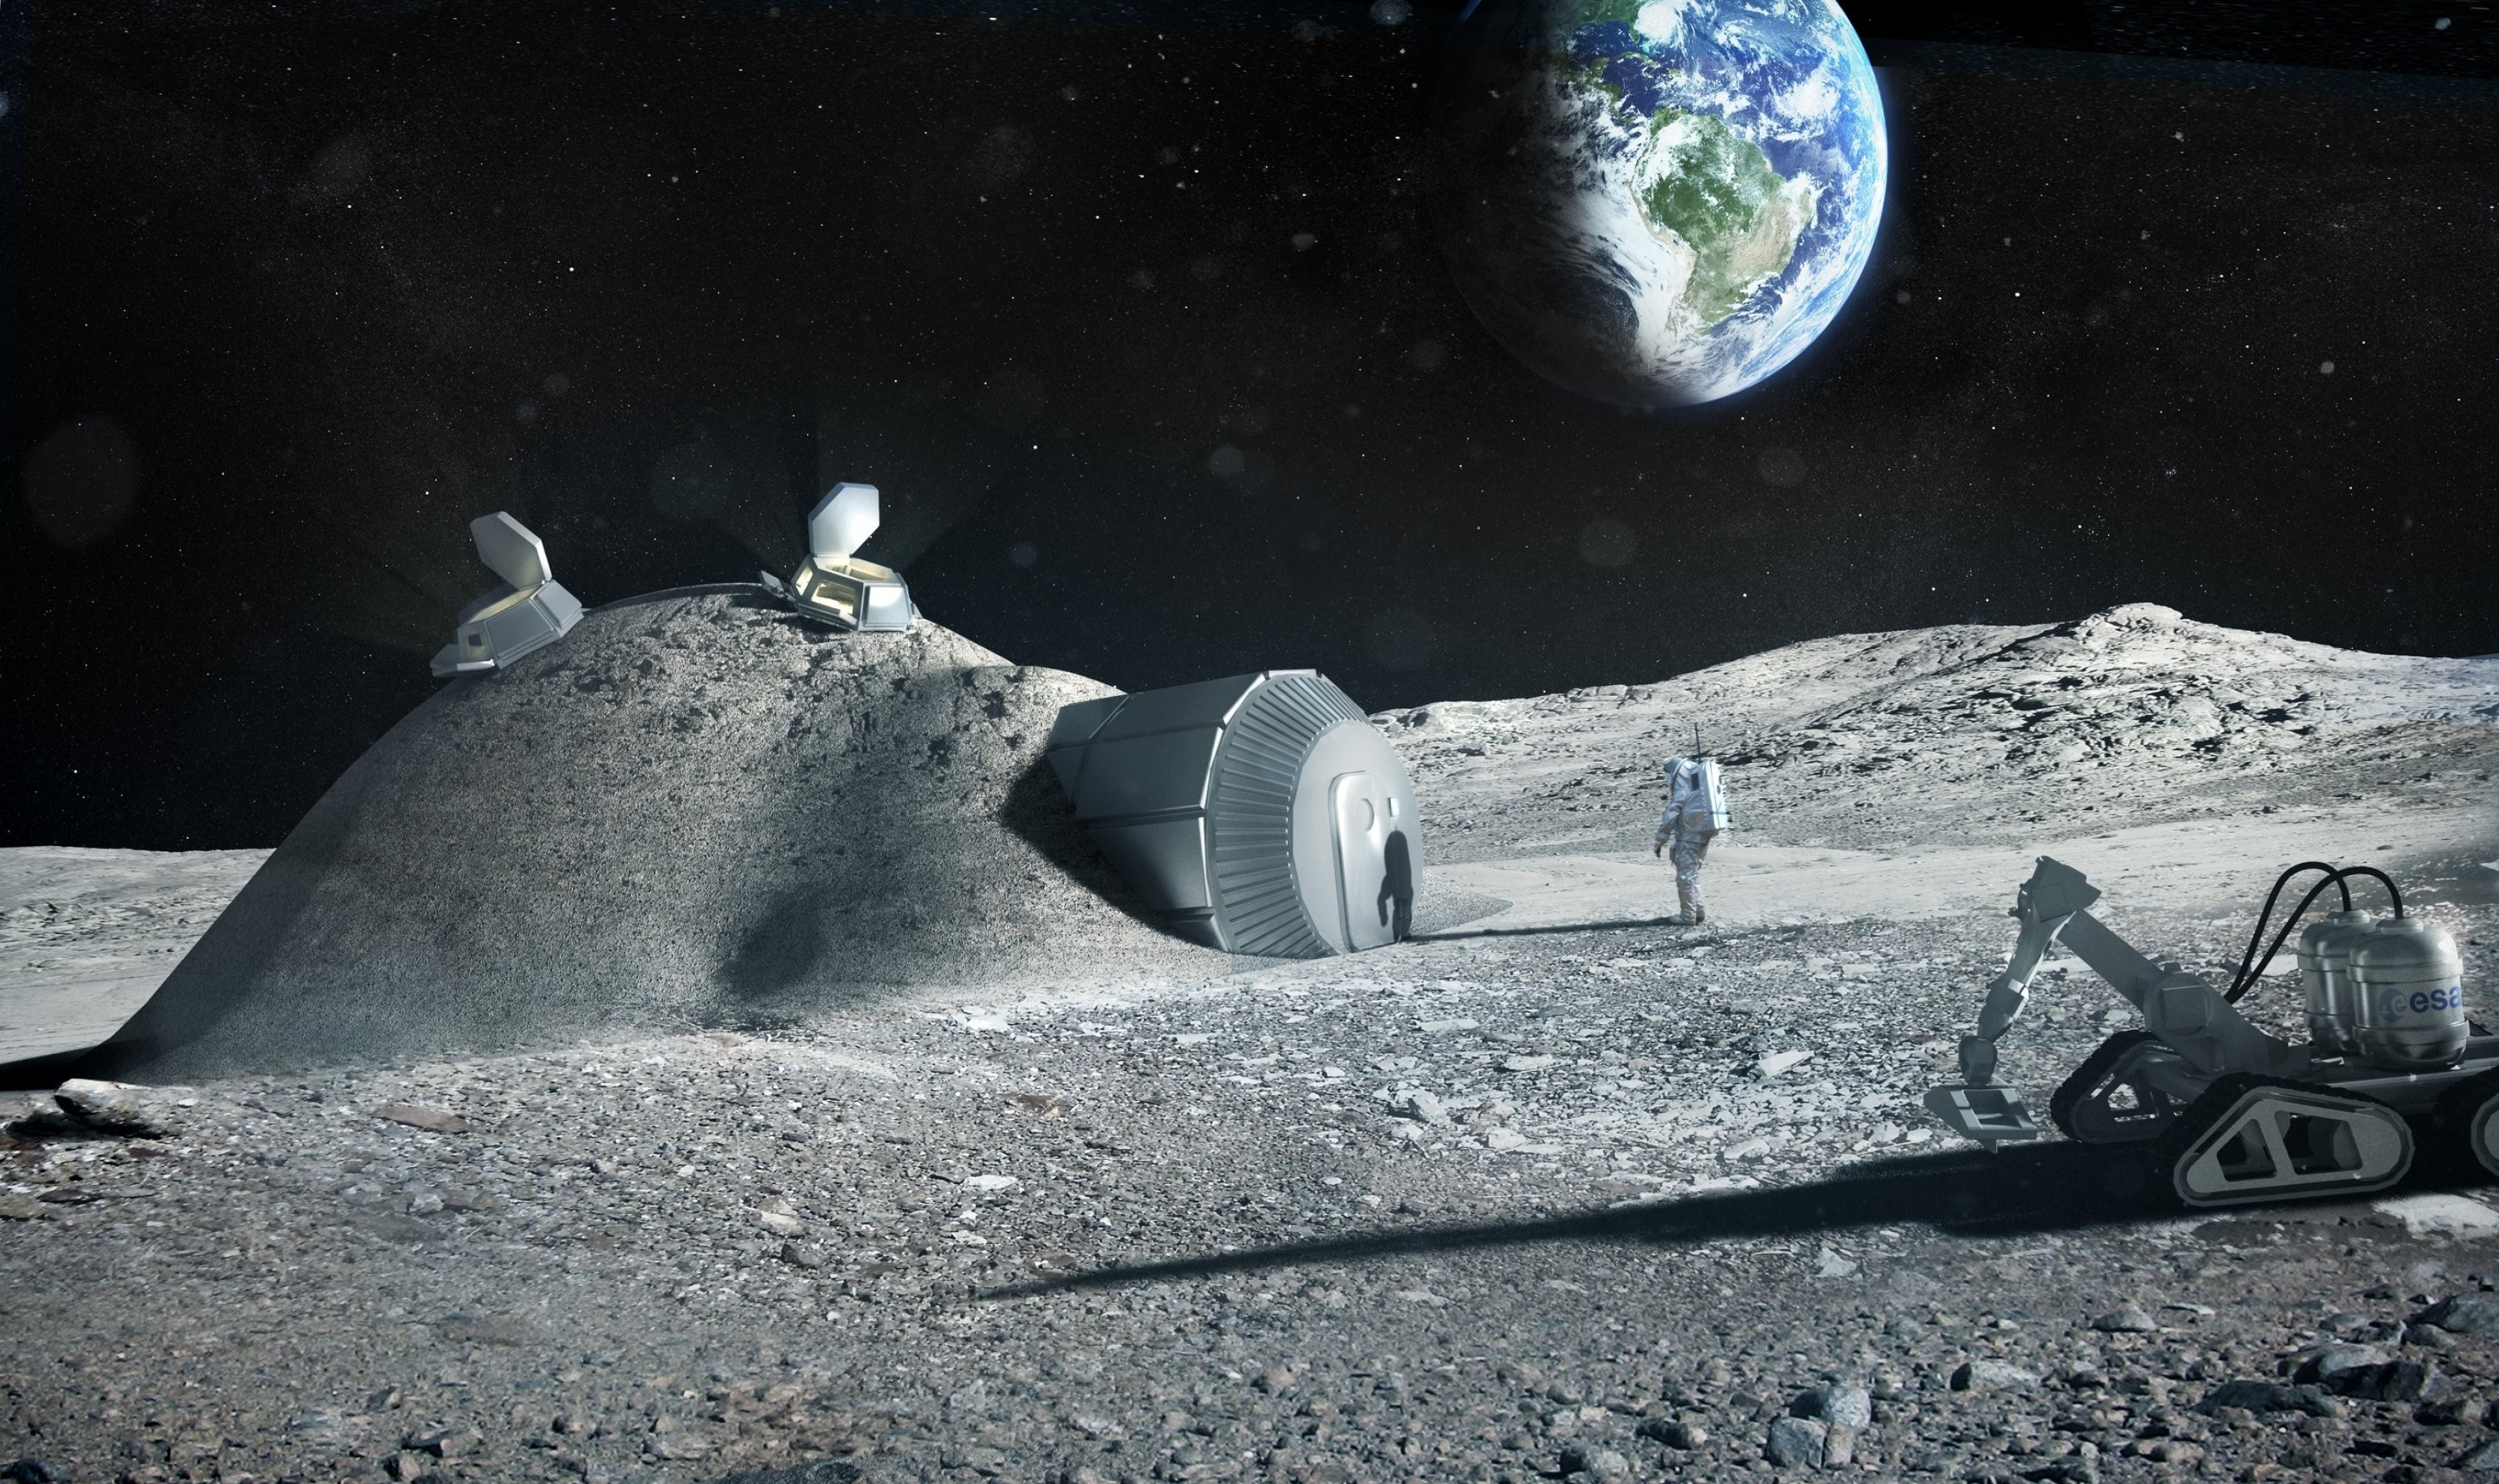 The moon in 2069: Space officials share their visions for lunar lifestyles  - GeekWire